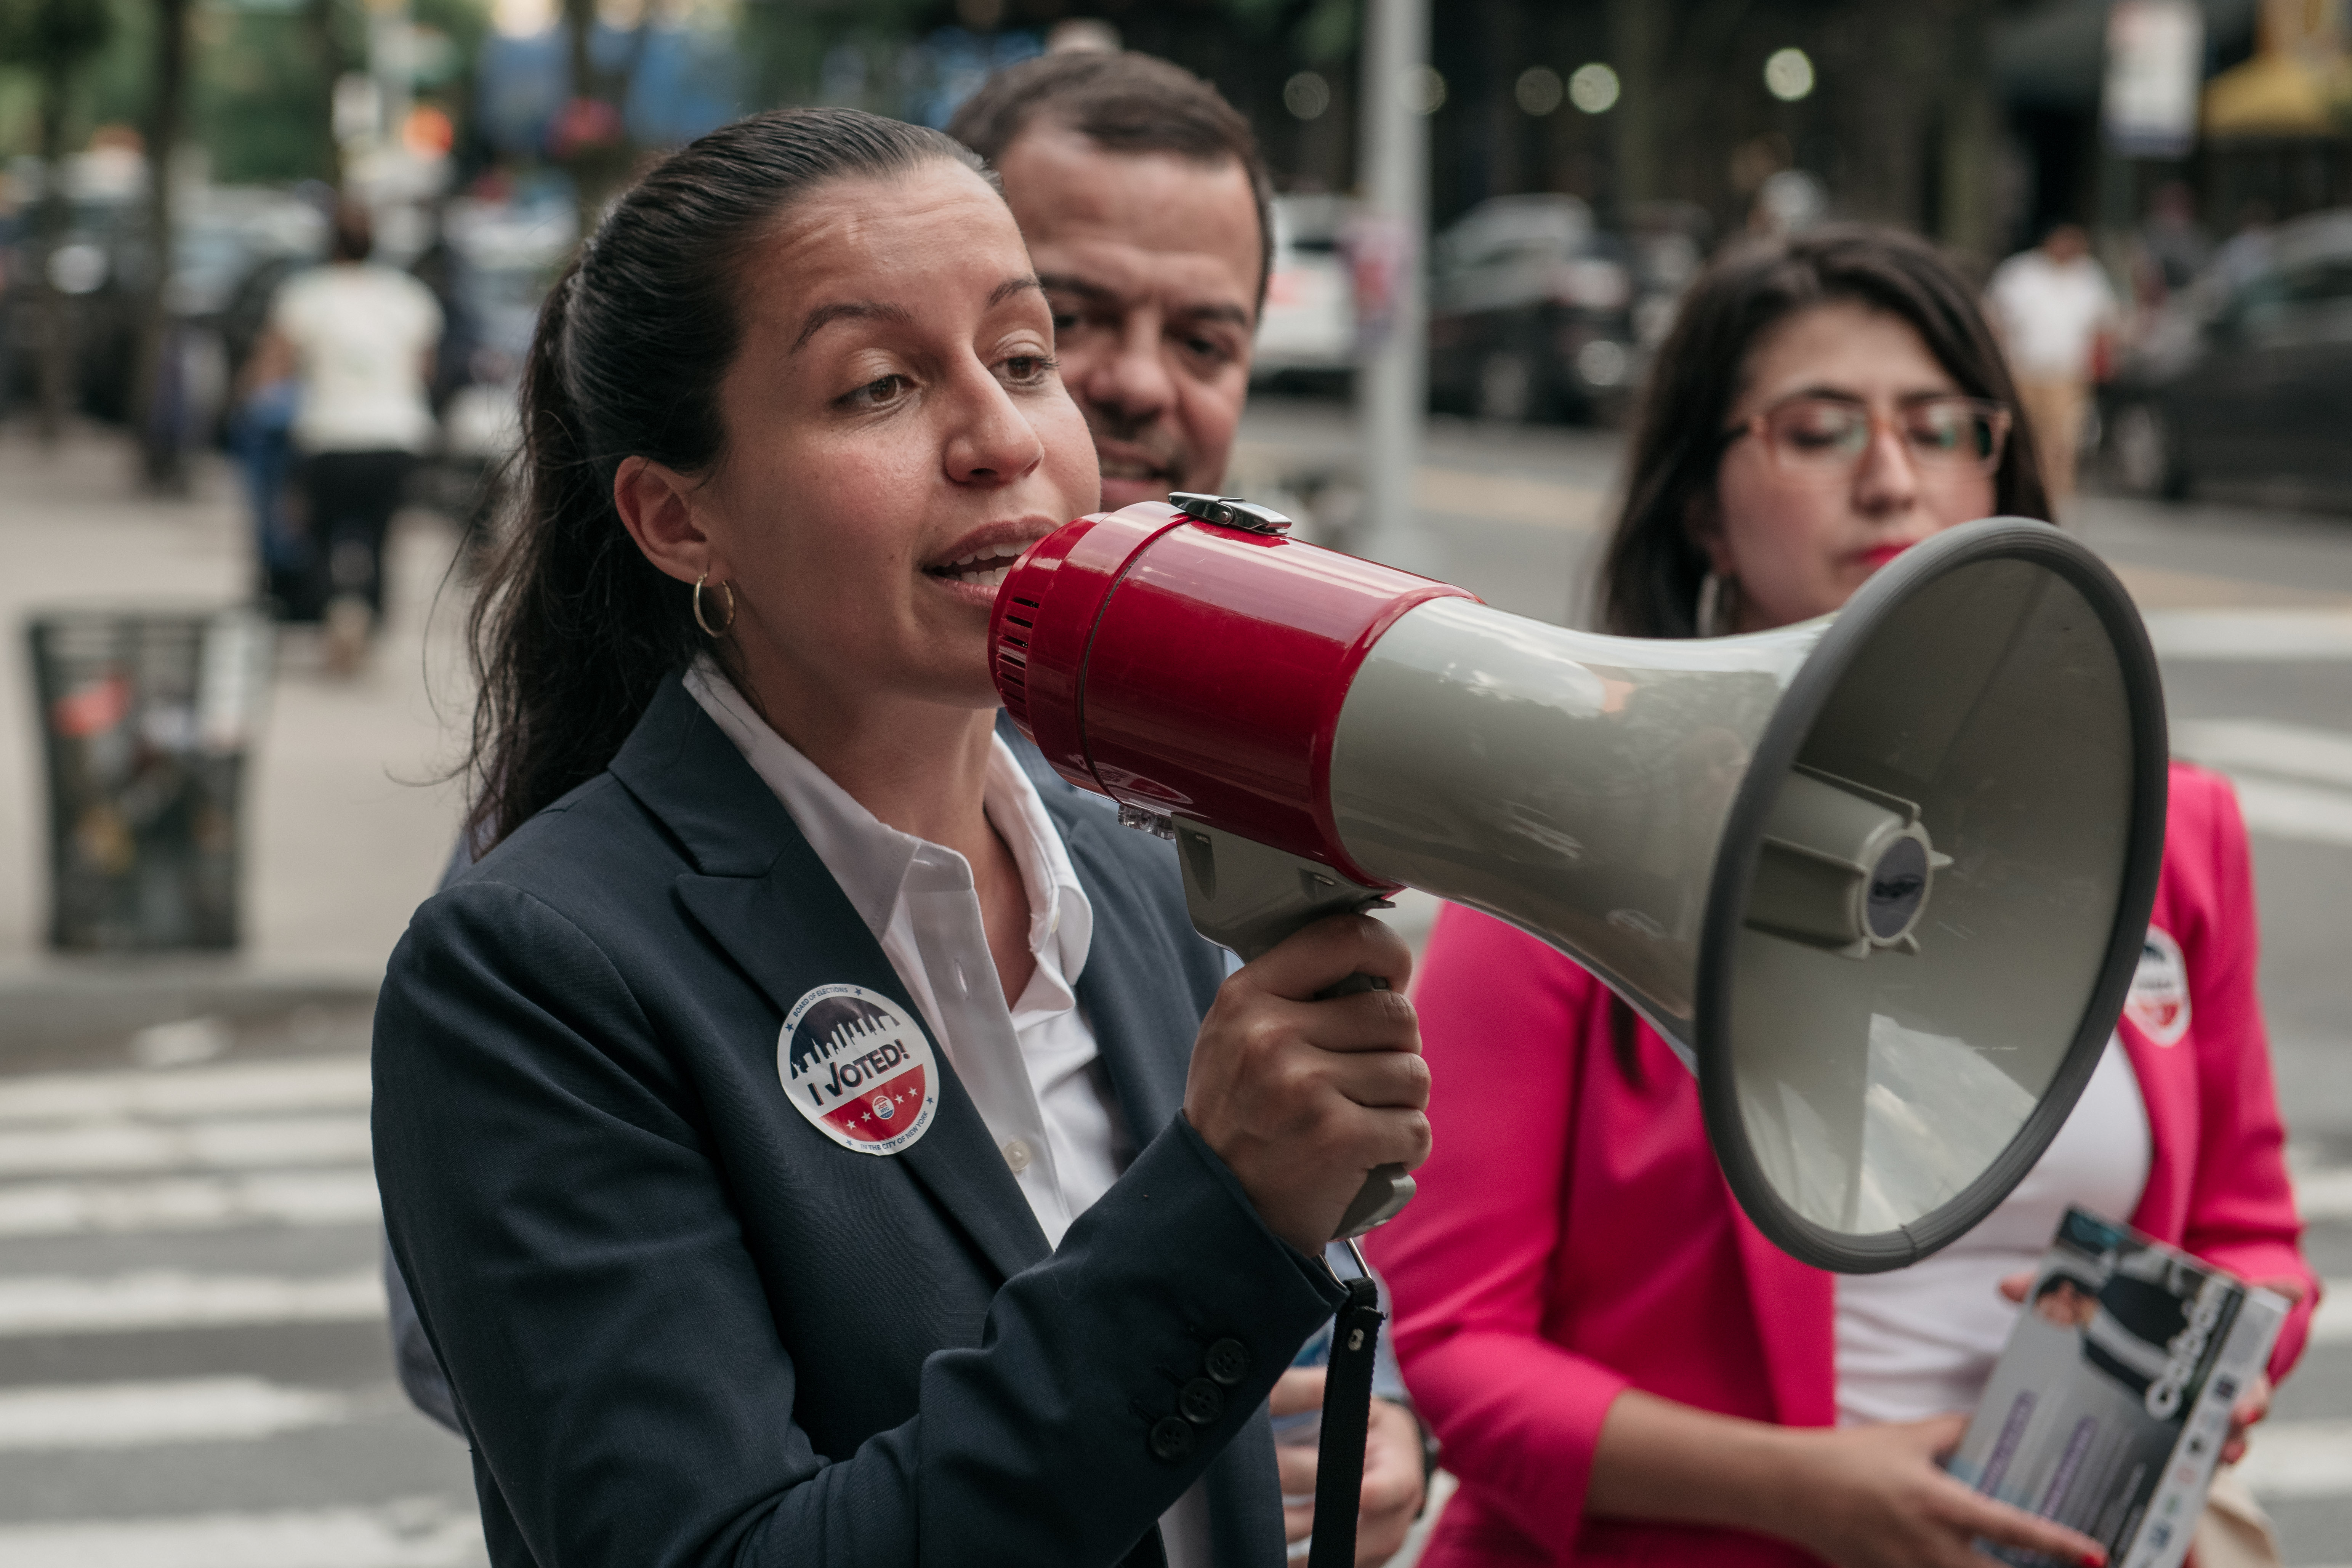 Tiffany Cabán's likely win in the Queens district attorney race is a huge deal